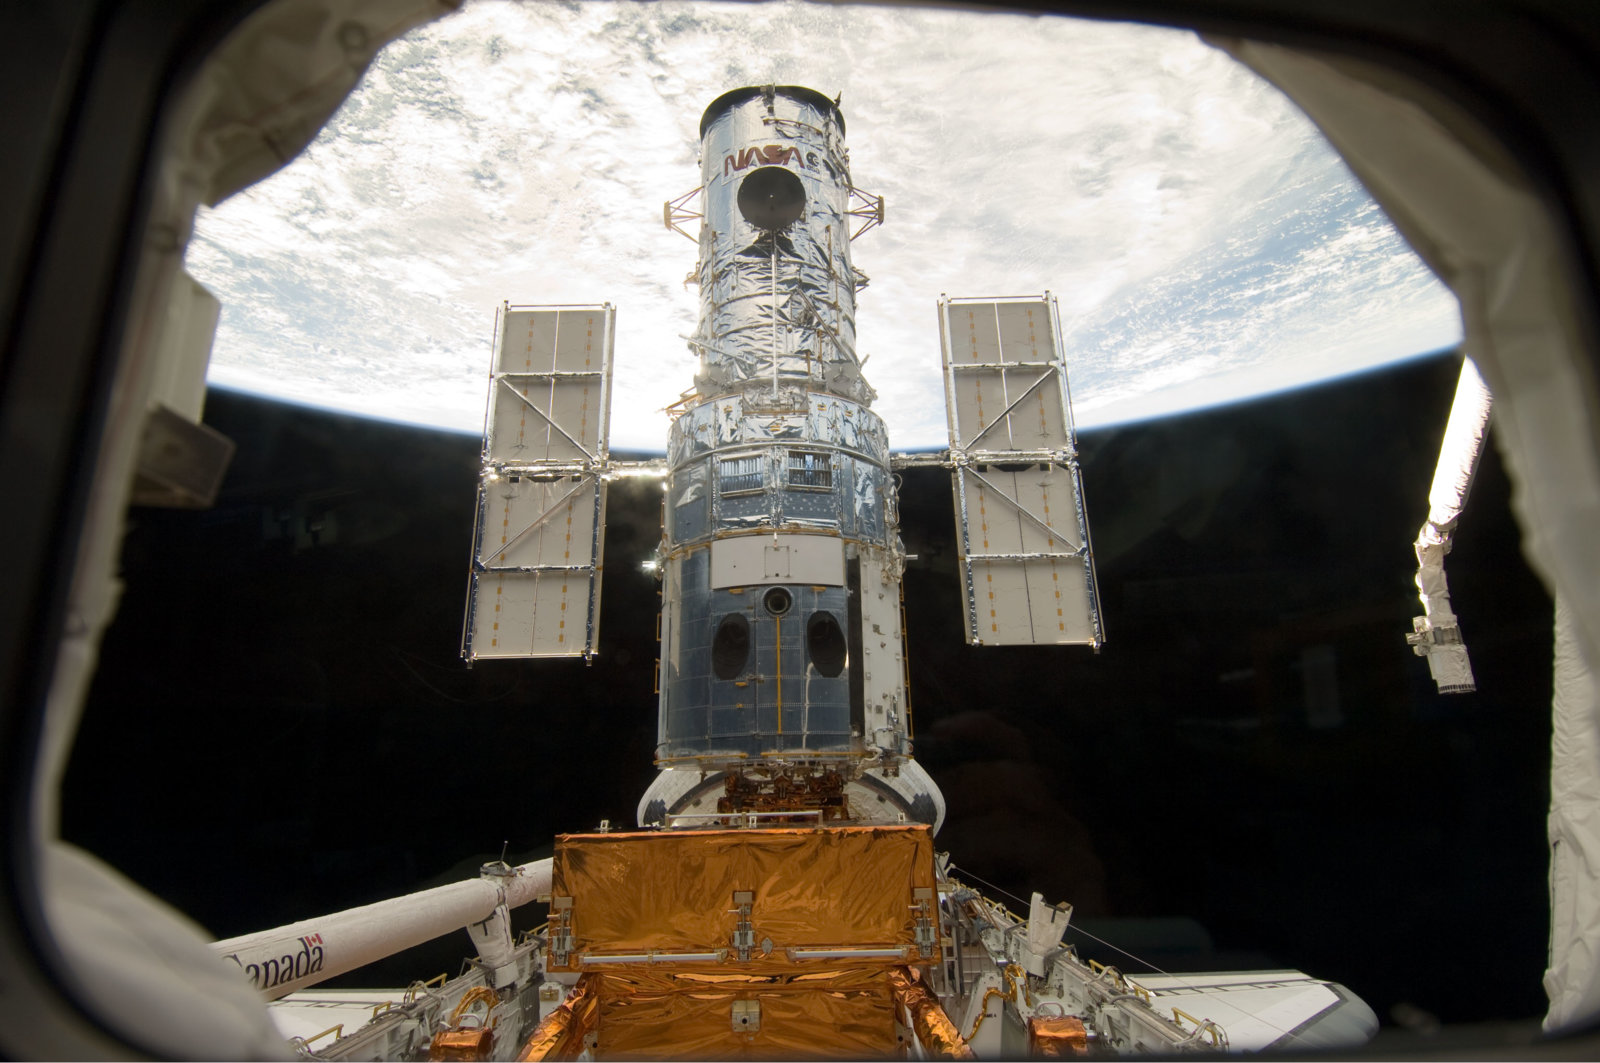 Hubble_docked_in_the_cargo_bay.